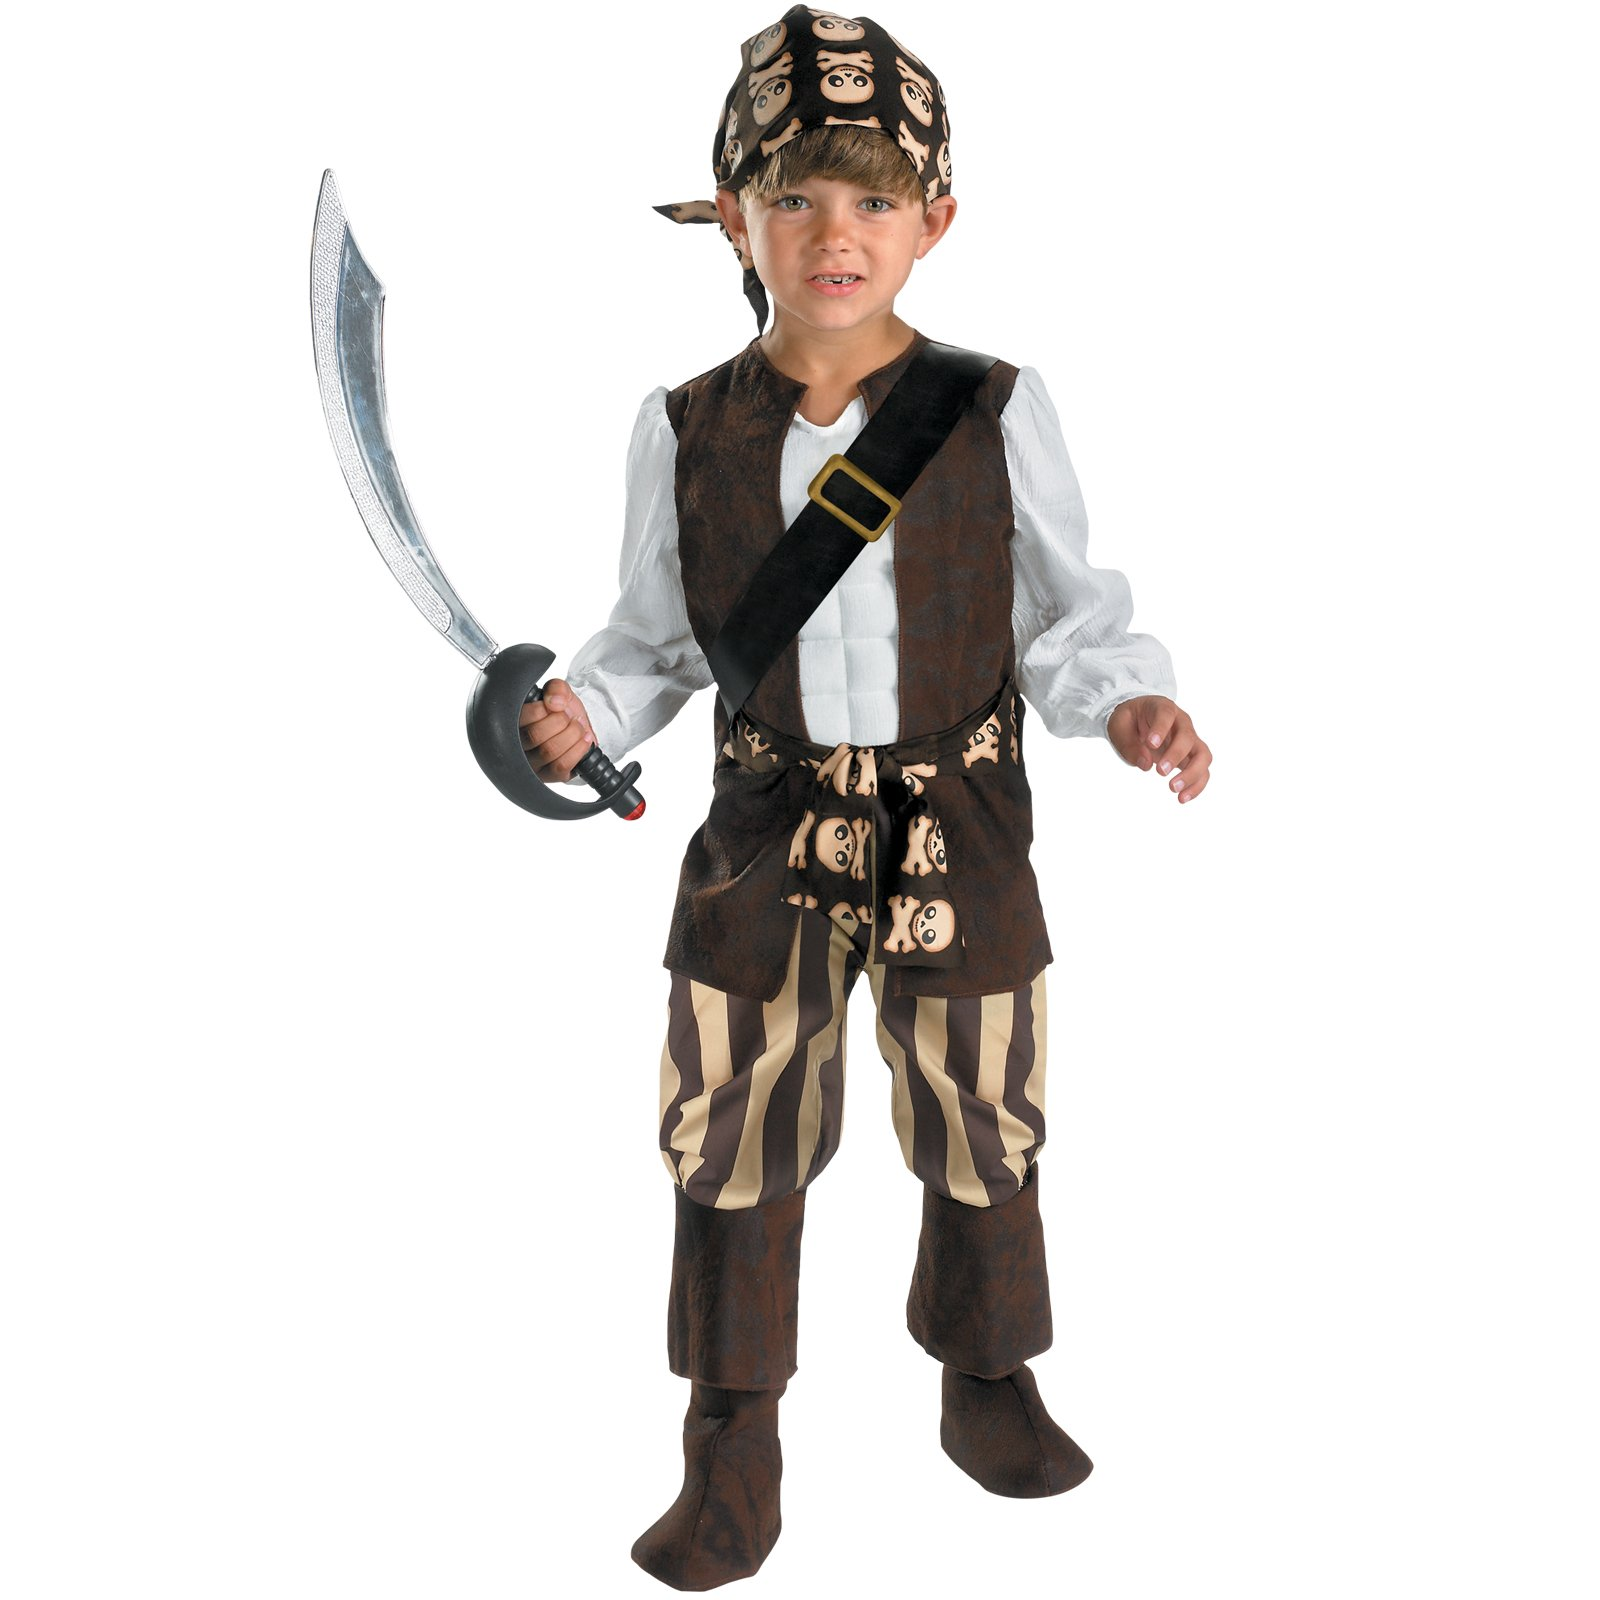 Rogue Pirate Child Halloween Costume by Disguise